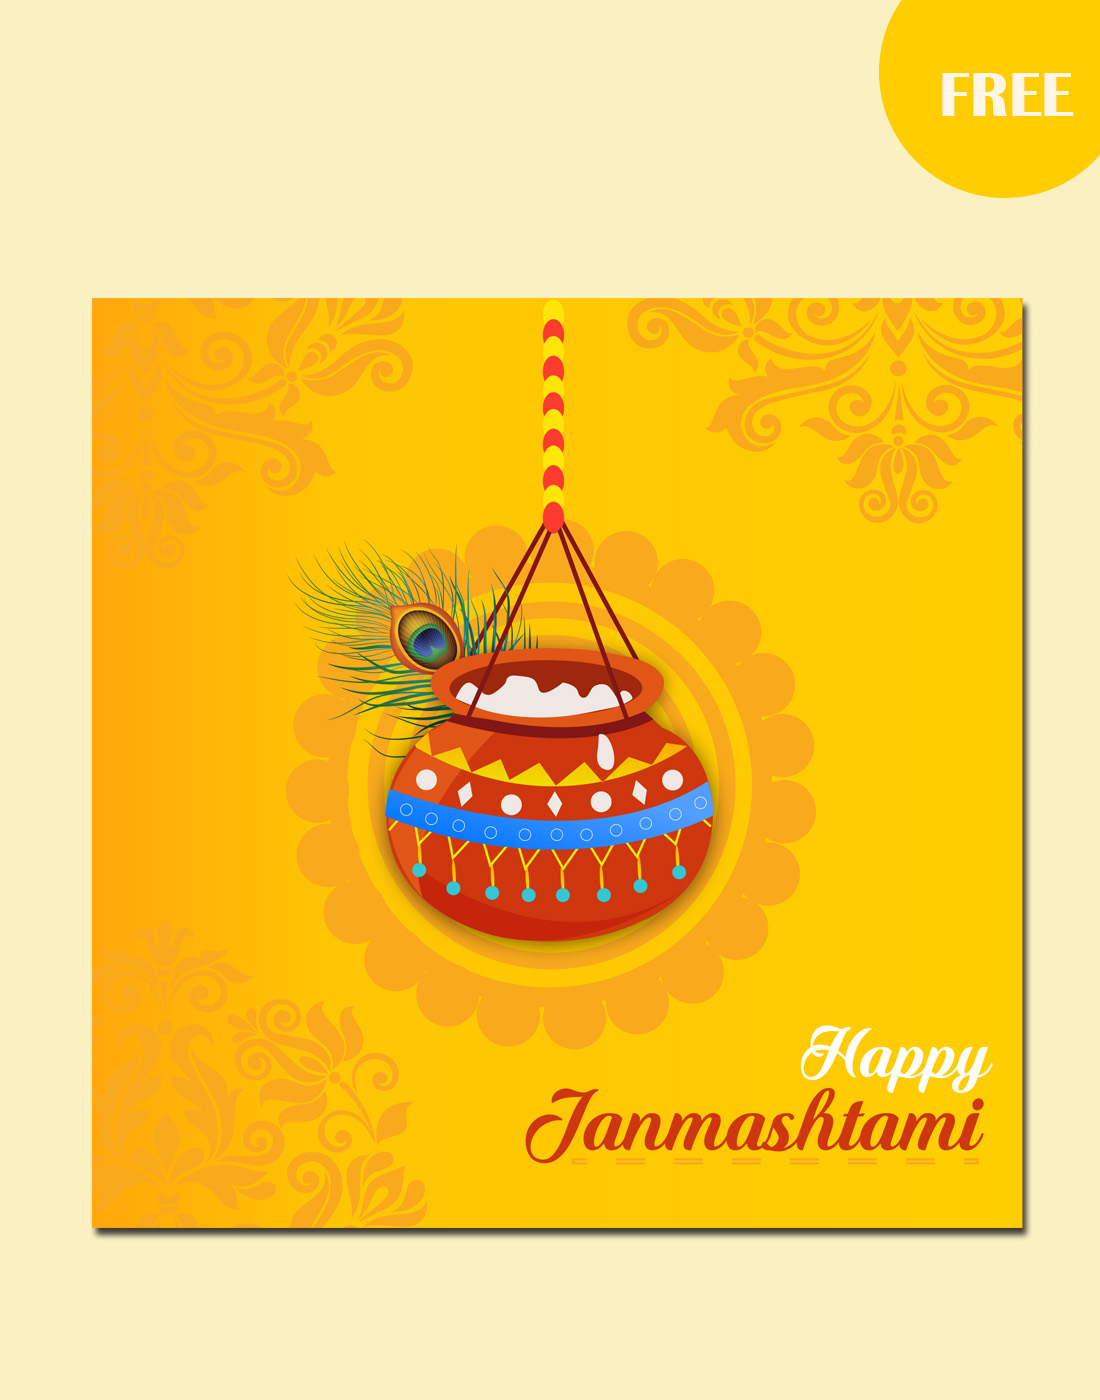 janmastami graphic